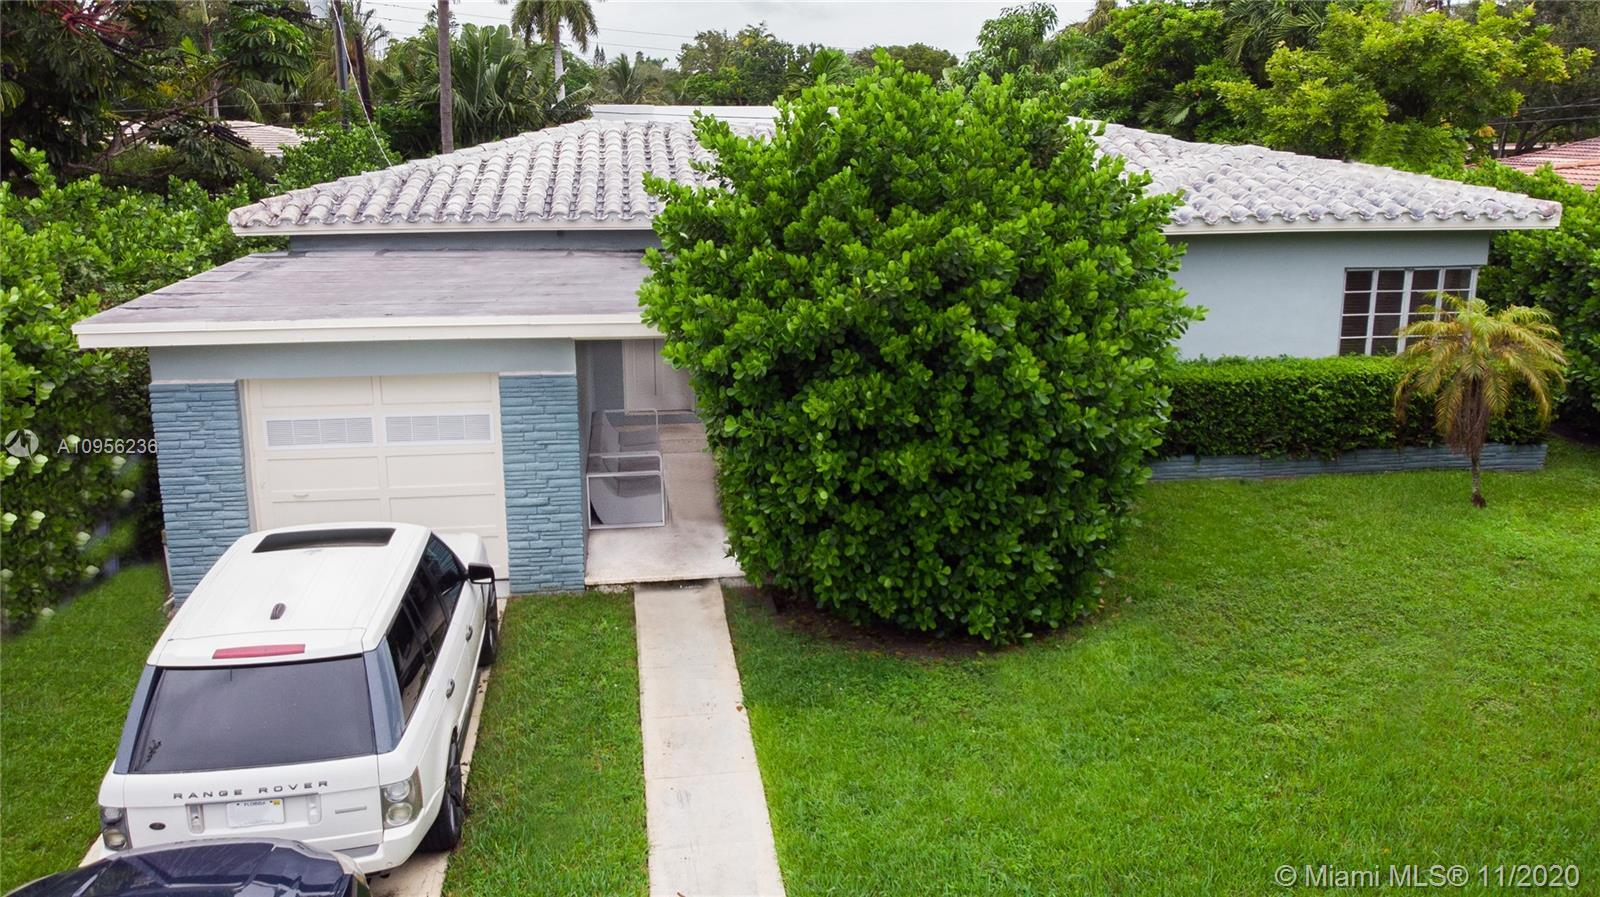 Pristine property back in the market !! Remodeled beautiful house from the 1950's. 2/2 with garage